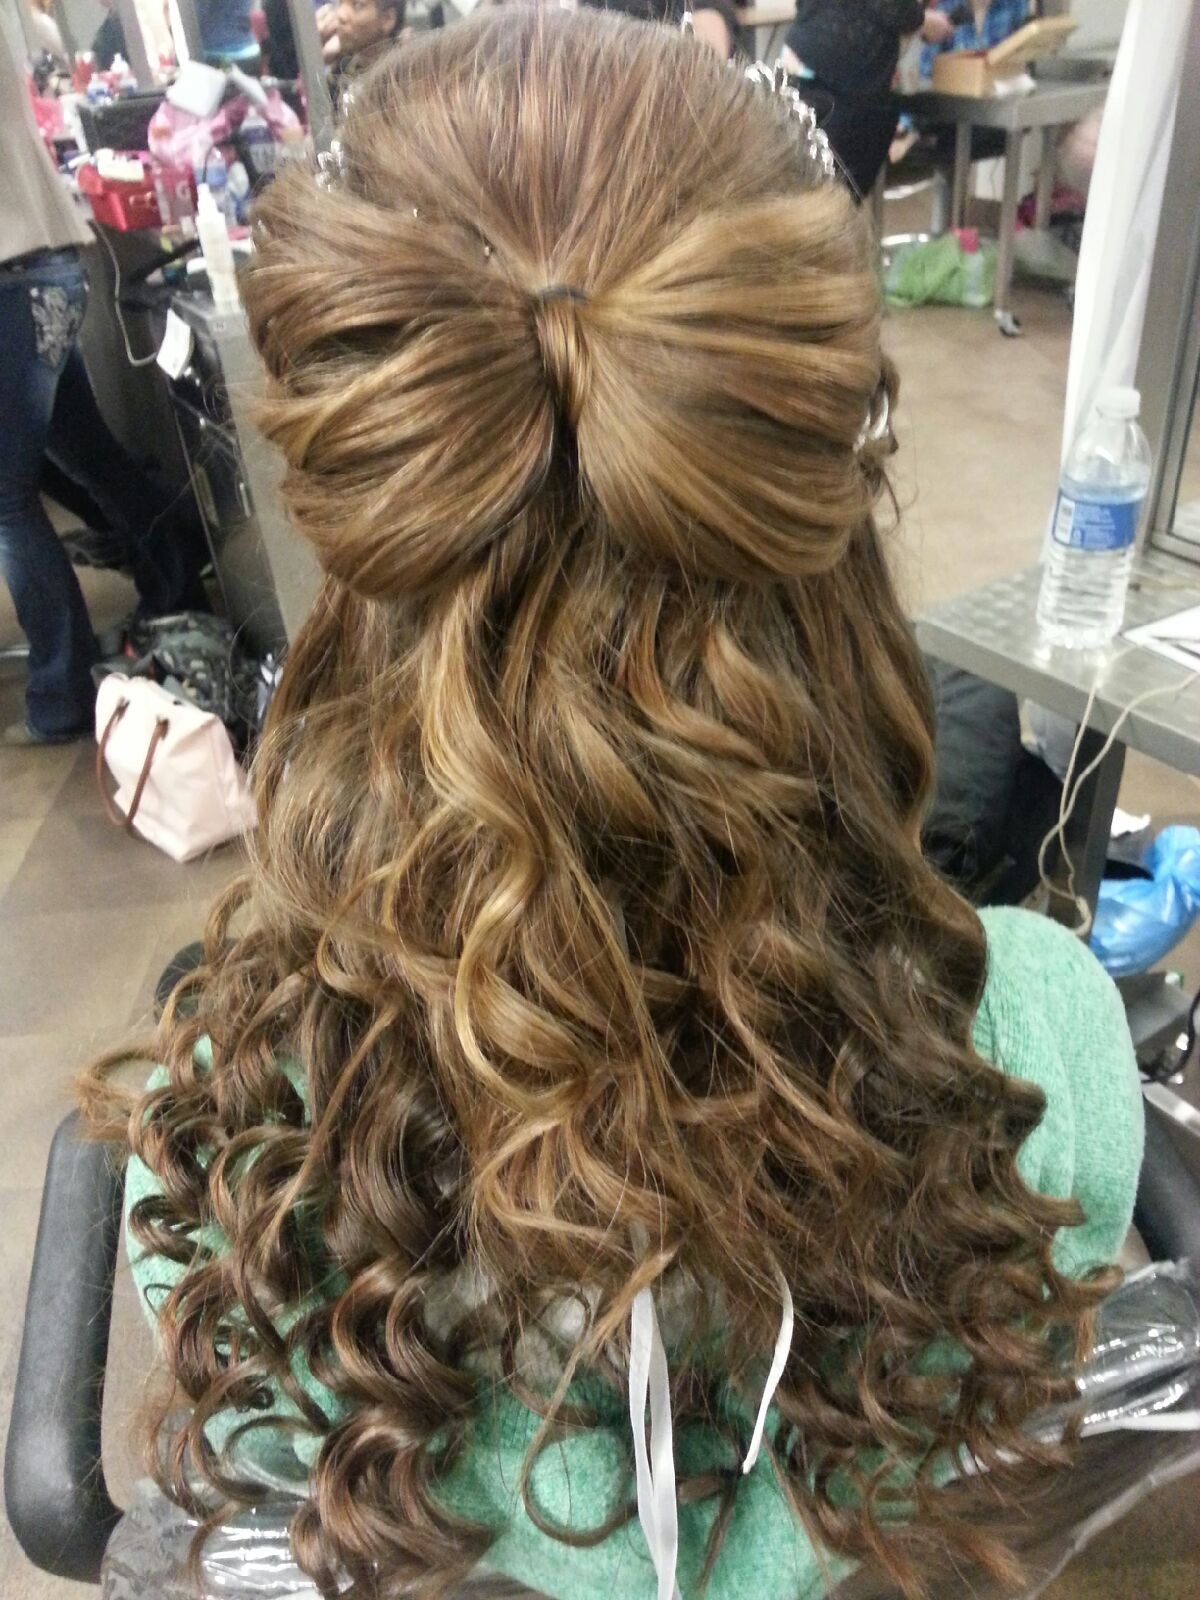 curly hair with a back bump and hairbow made out of hair. <3